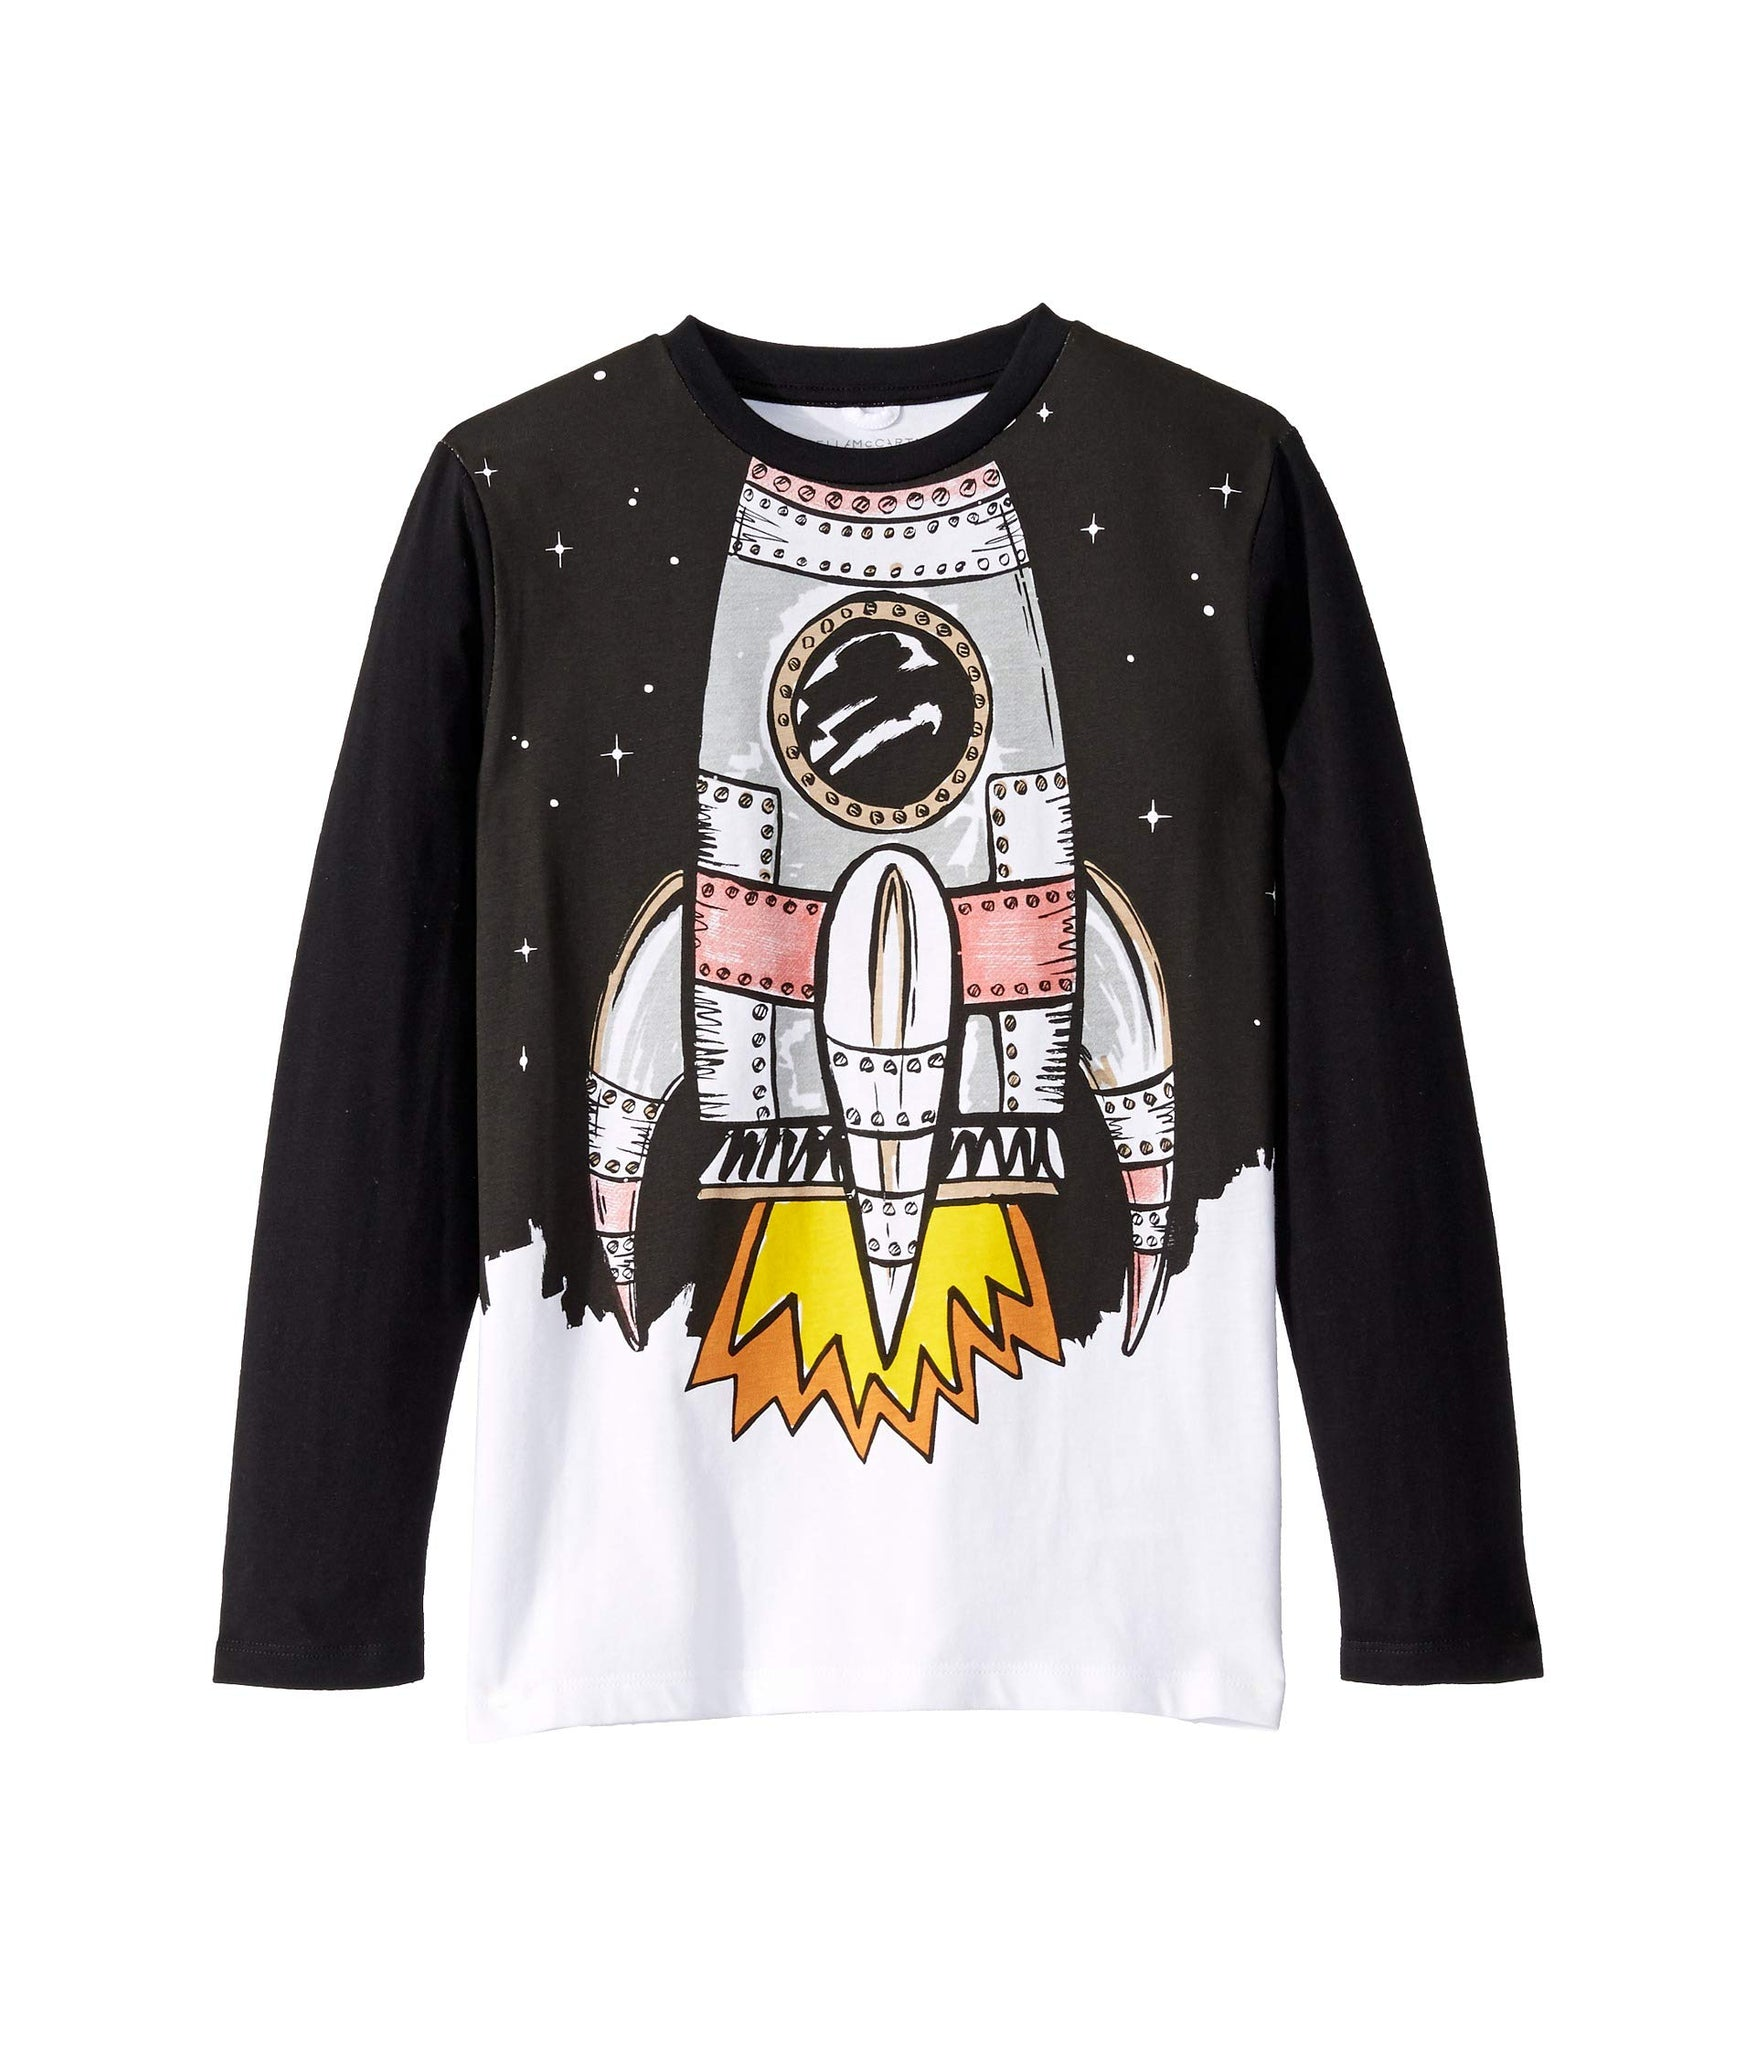 Stella McCartney Boys Black Space Shuttle Top